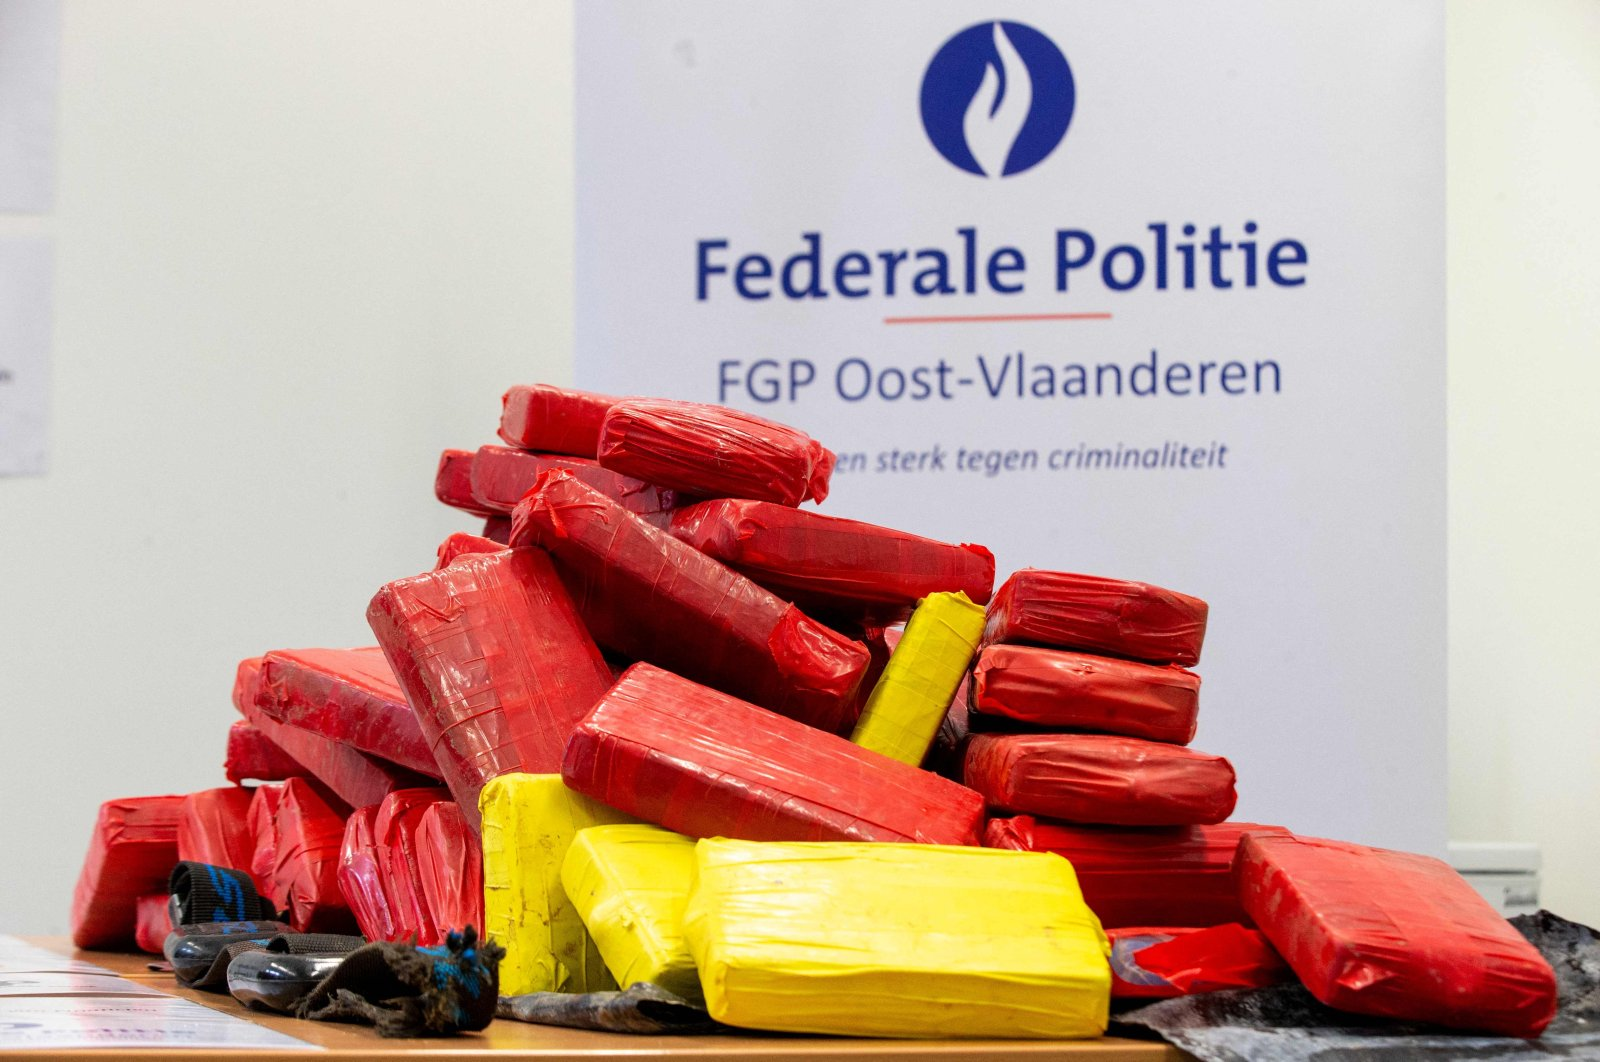 This photograph shows a seizure of some 200 kilograms of cocaine, at the Federal Police East Flanders station, in Dendermonde, Belgium, June 25, 2021. (AFP File Photo)